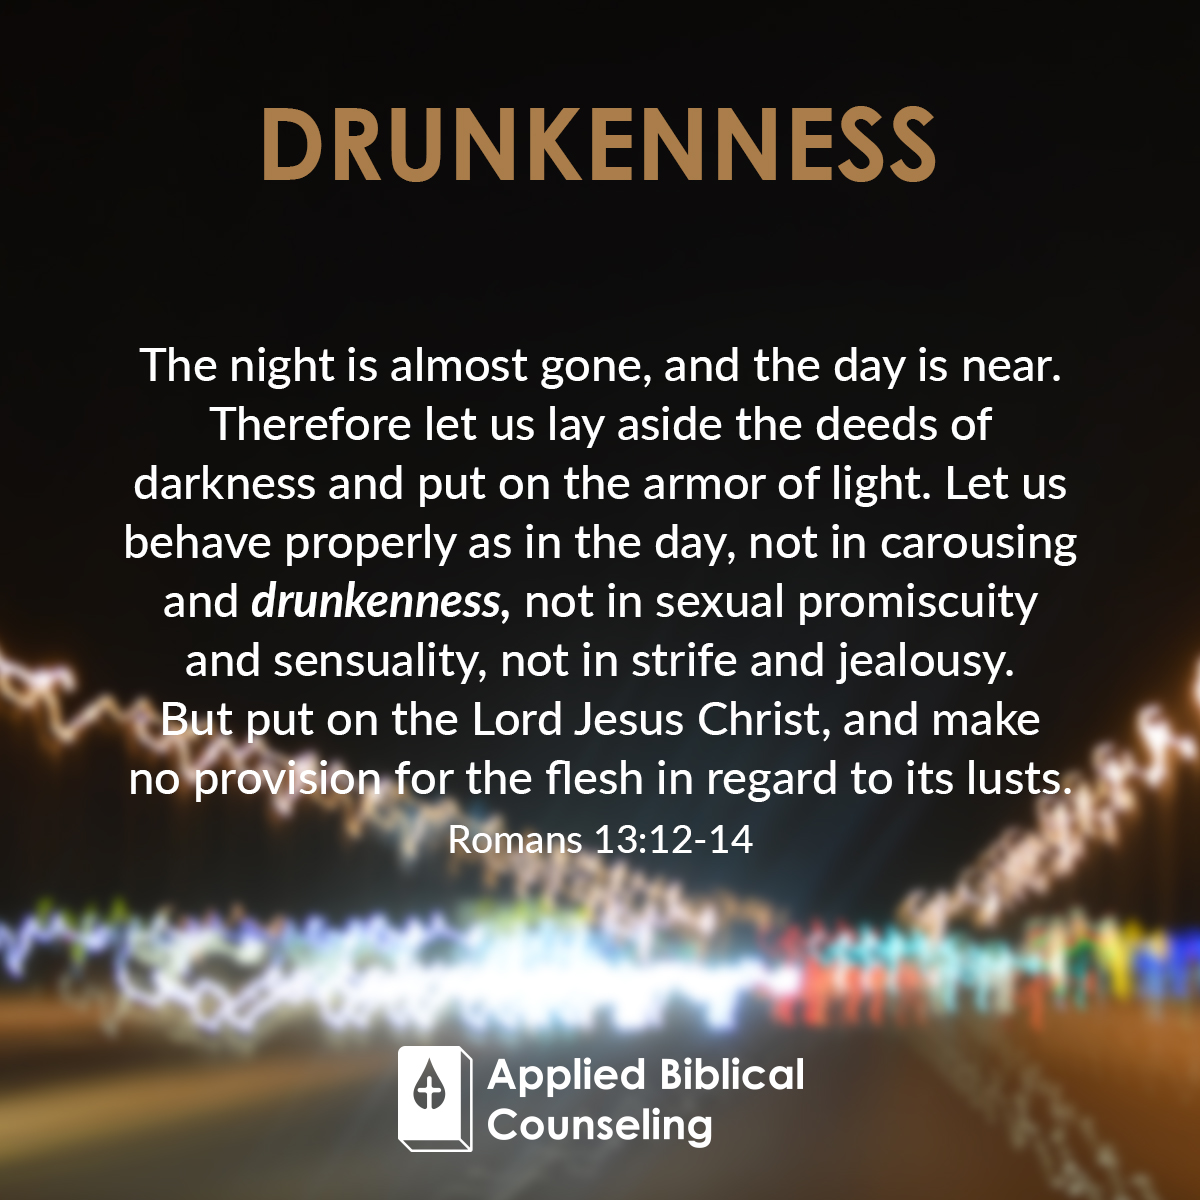 Applied Biblical Counseling Facebook w18 Drunkenness 4